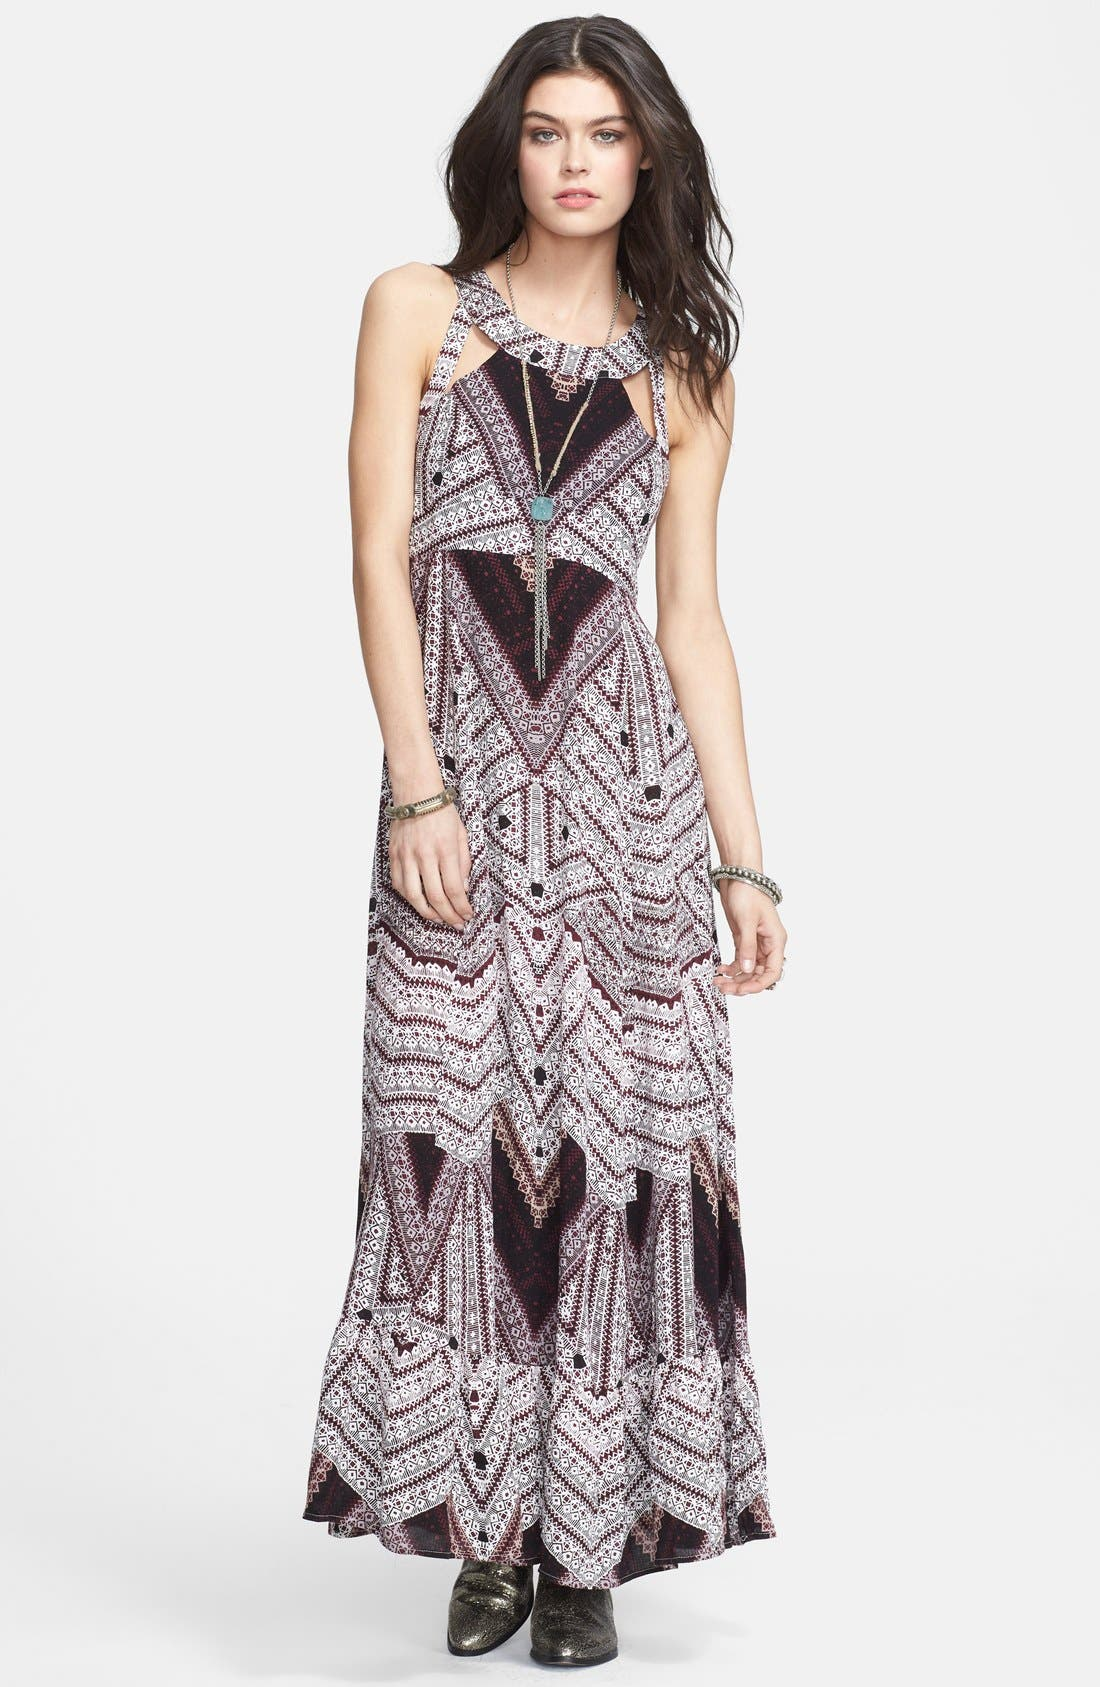 Alternate Image 1 Selected - Free People 'You Made My Day' Print Cutout Maxi Dress